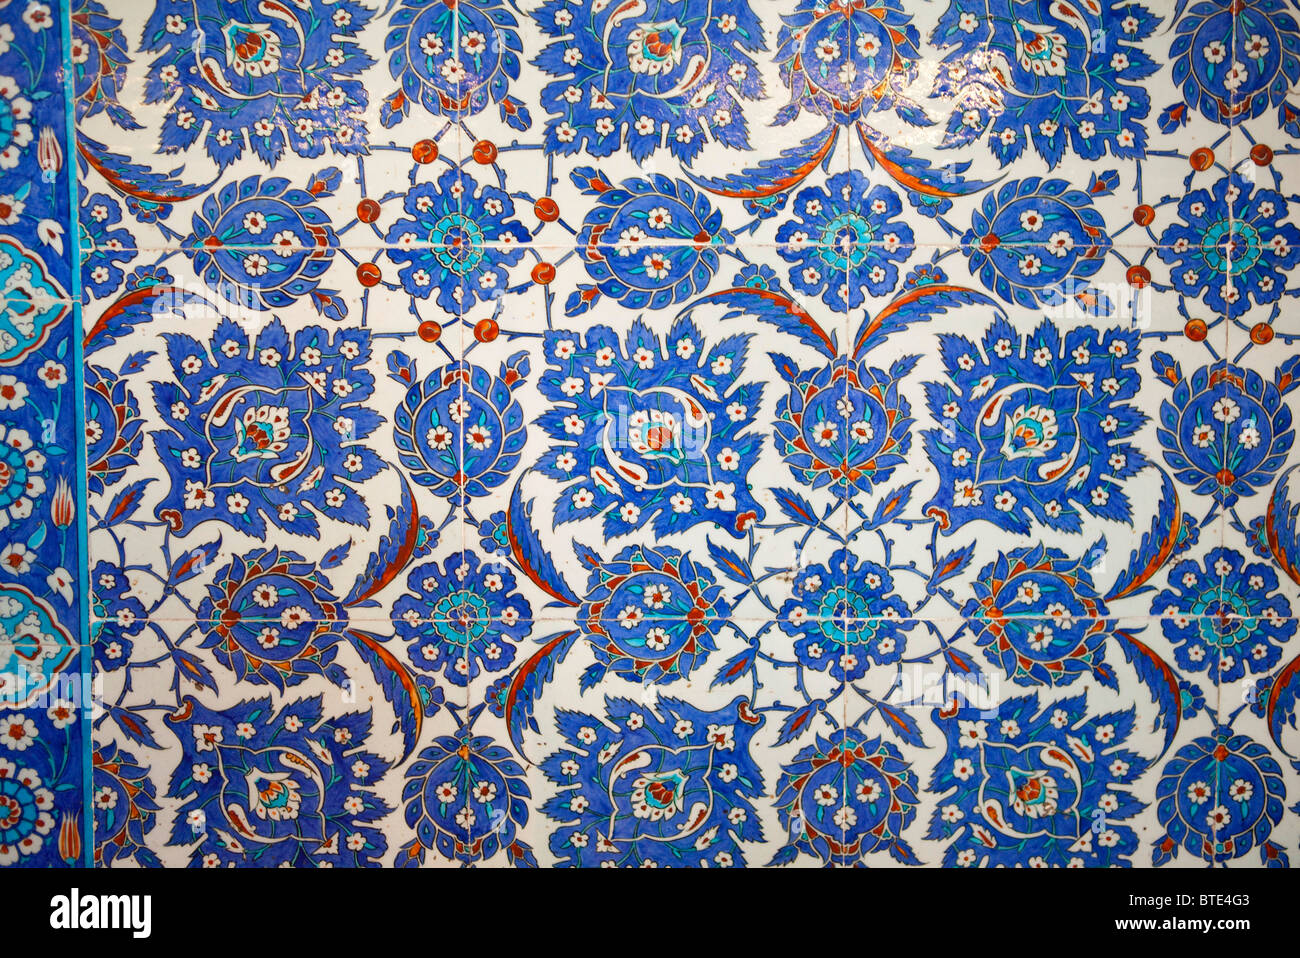 The Yeni mosque Istanbul Turkey. blue ceramic tiles interior details ...